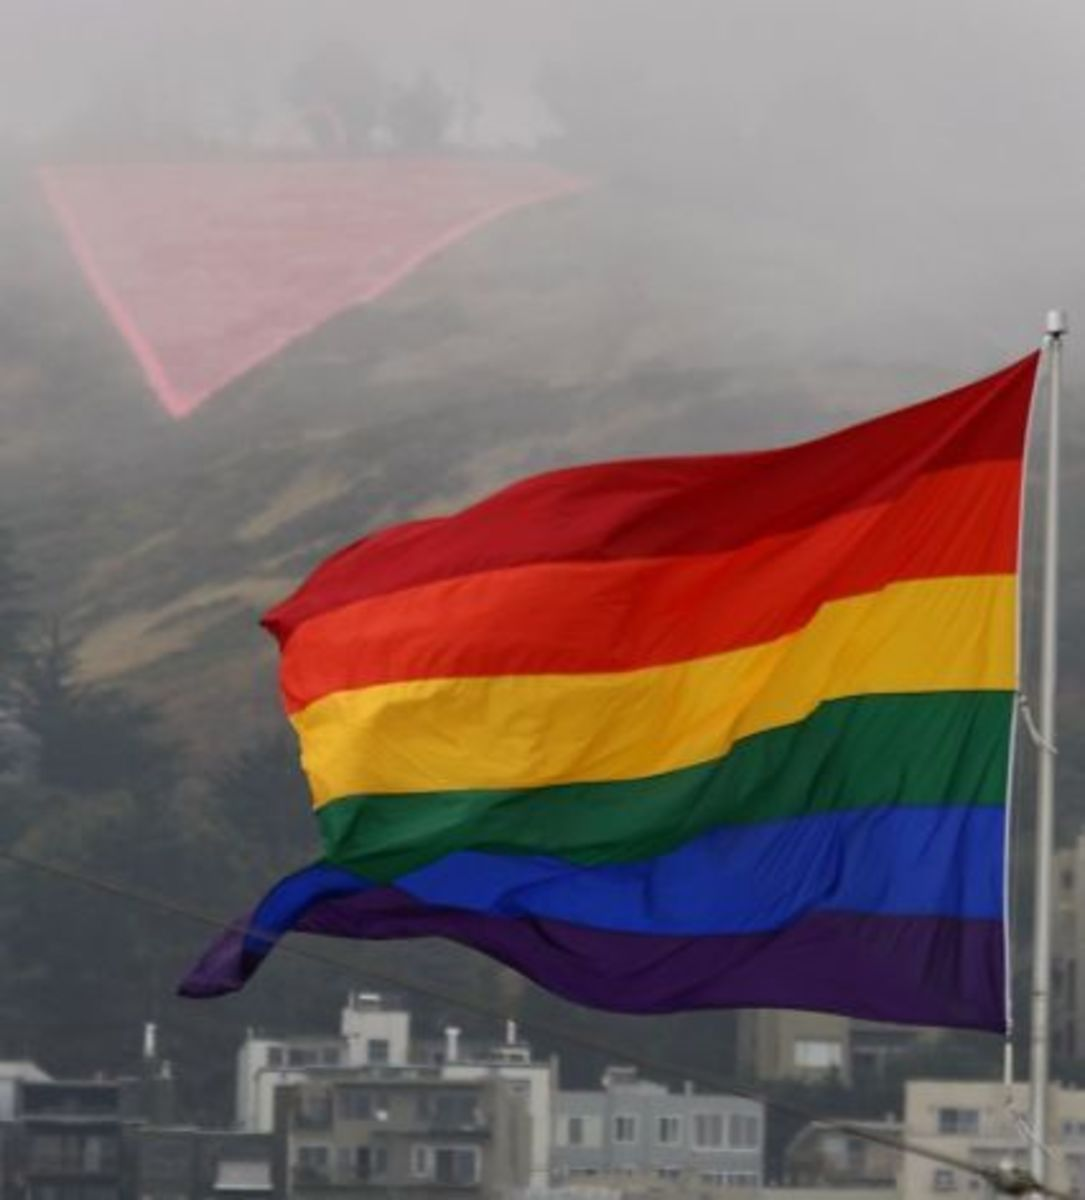 homosexuality-in-science-does-same-sex-behavior-natural